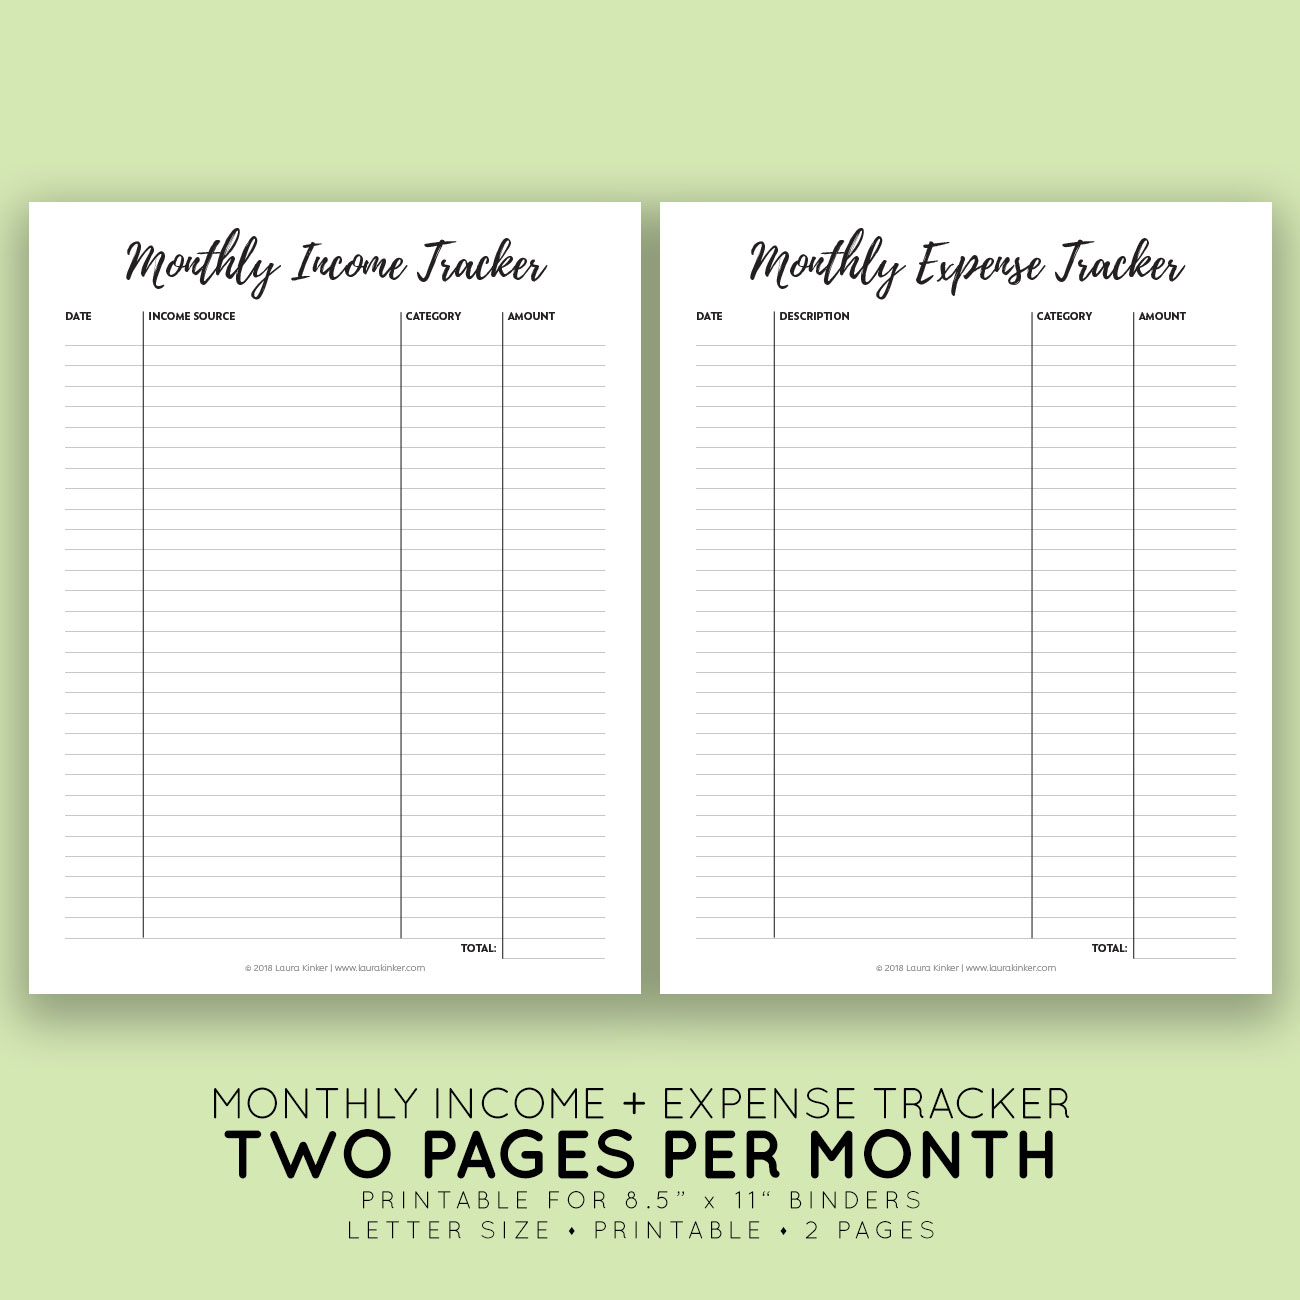 picture regarding Printable Expense Tracker referred to as Printable Month-to-month Gross sales + Price tag Tracker Laura Kinker